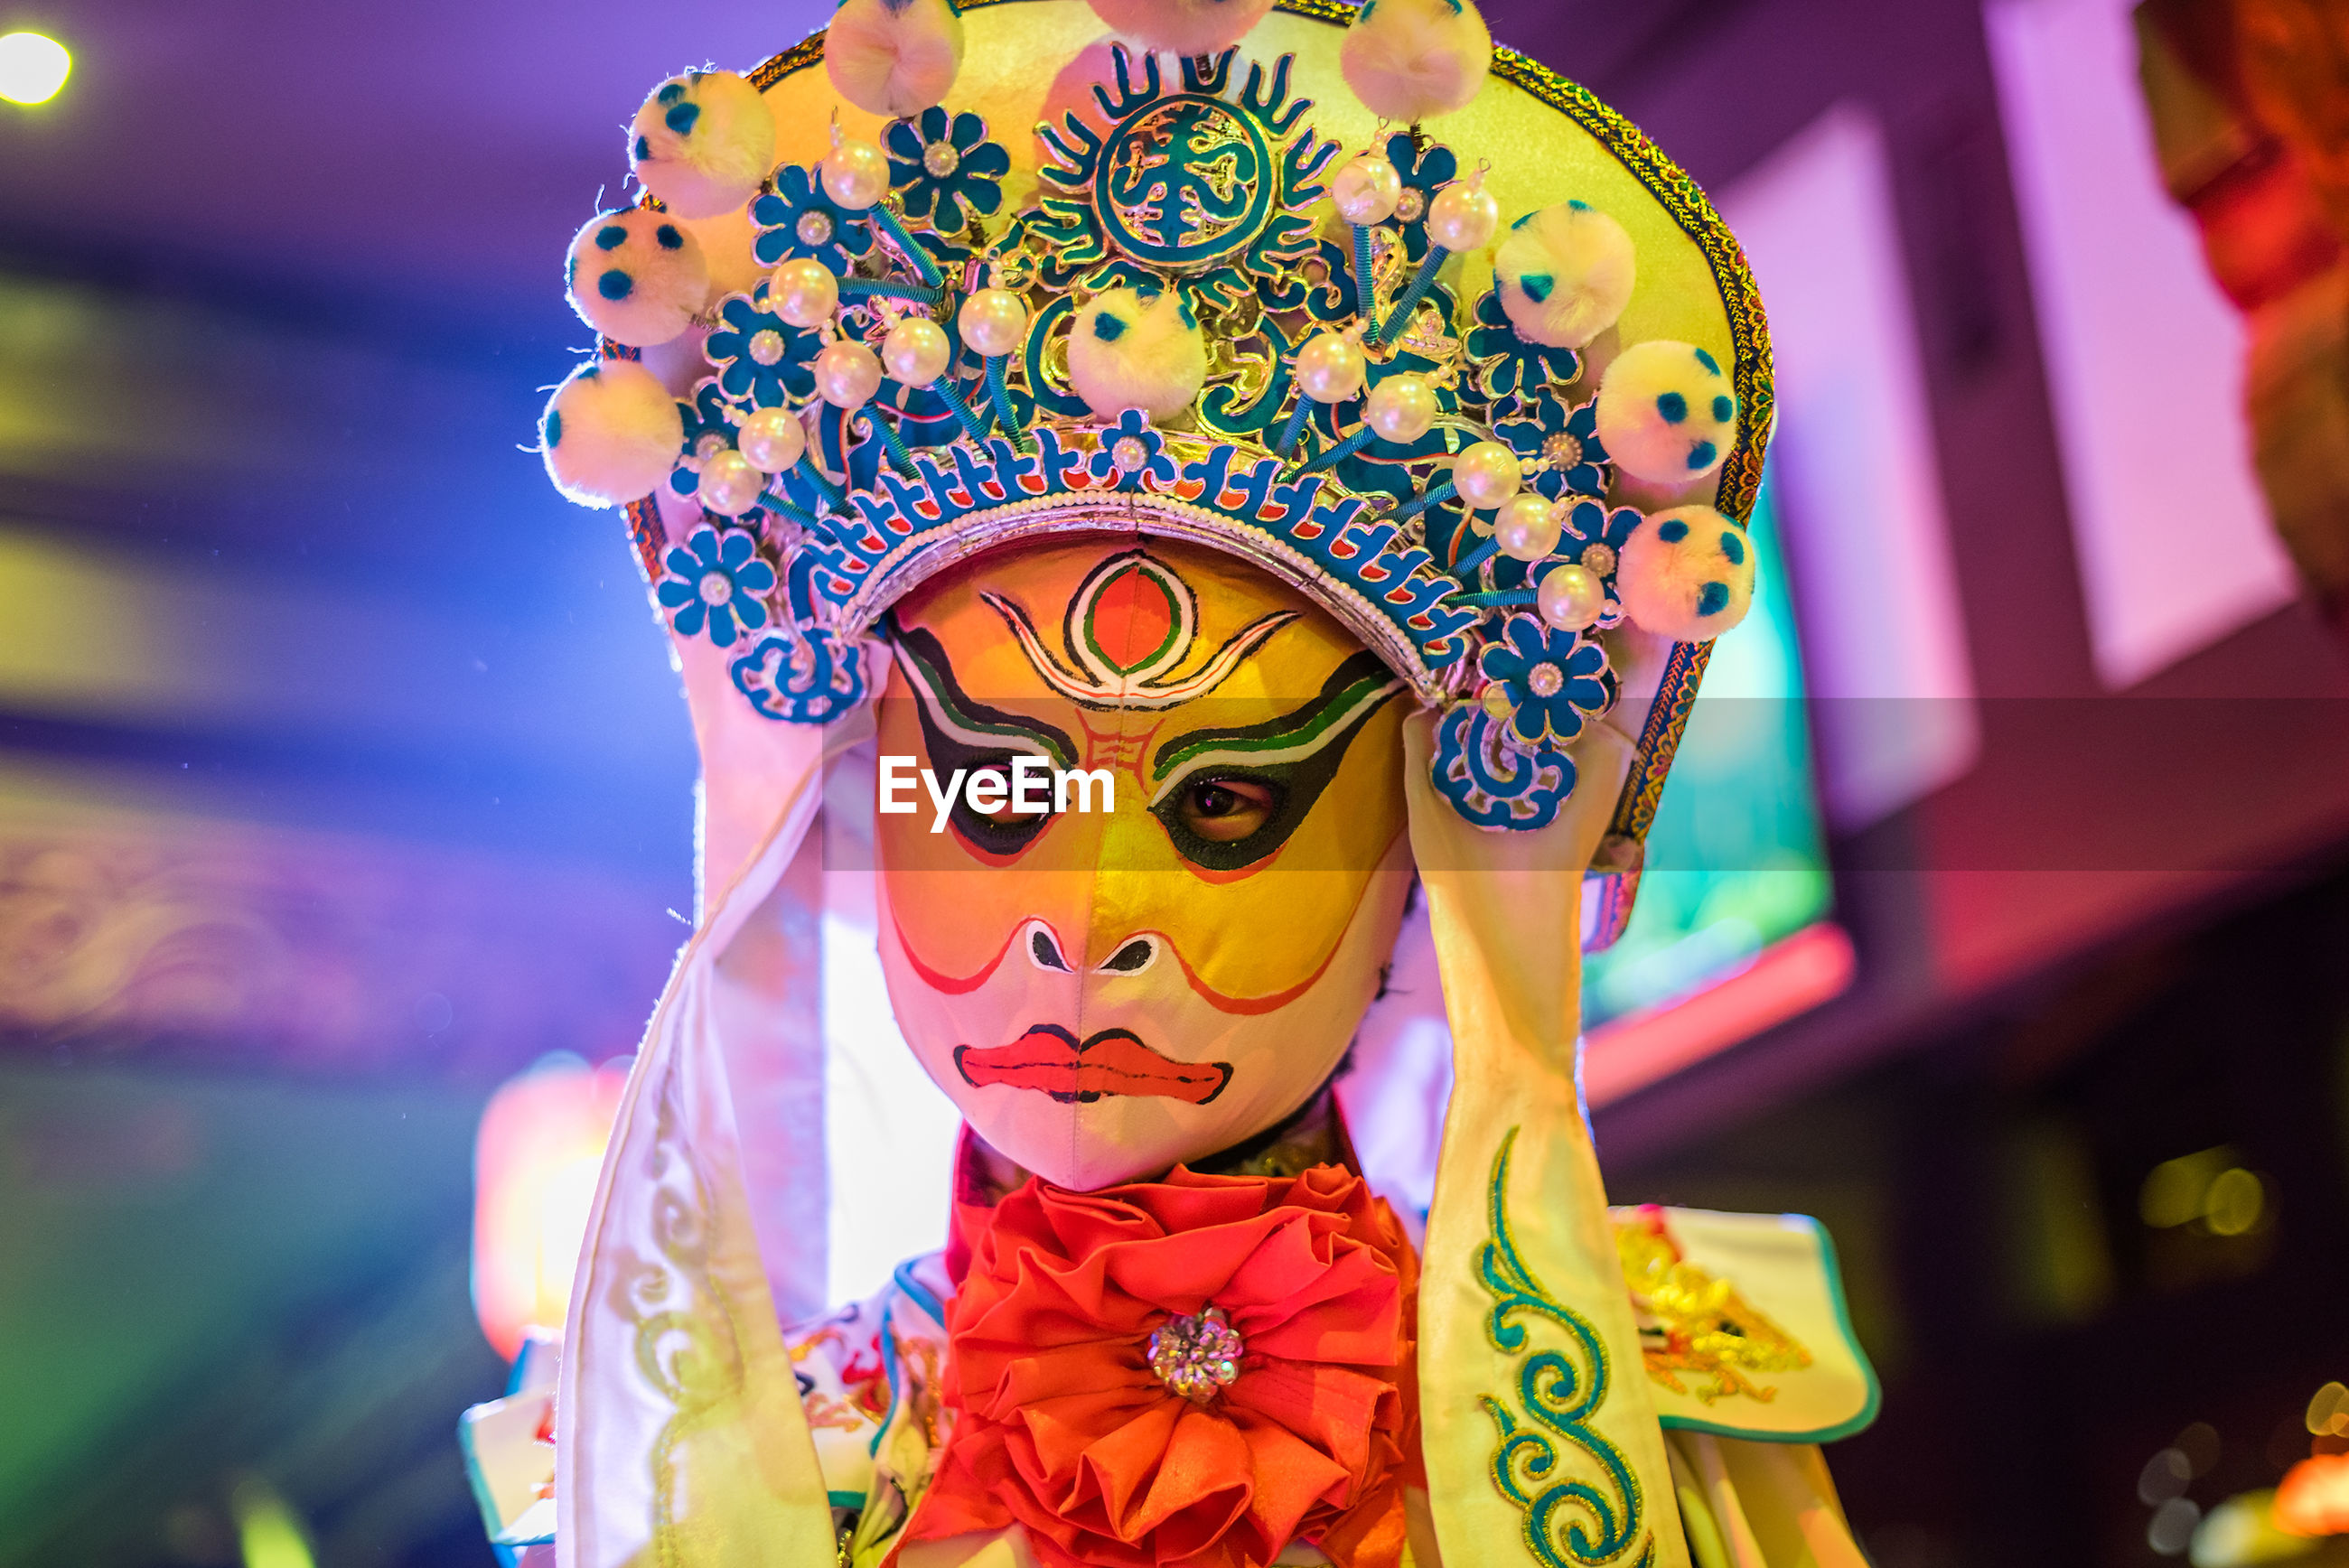 CLOSE-UP OF COLORFUL MASK